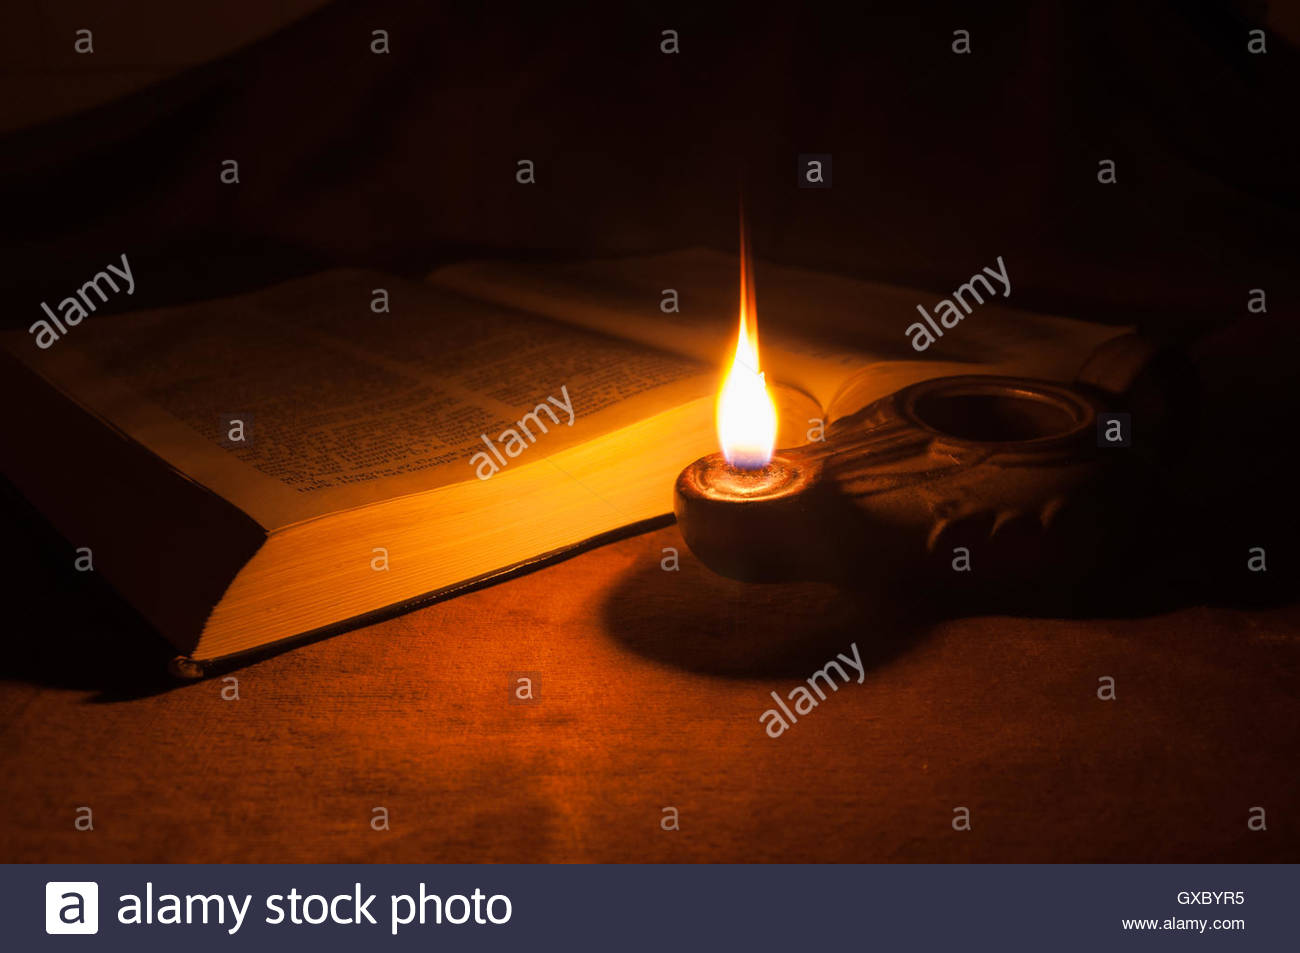 Oil lamp and Bible Stock Photo, Royalty Free Image: 119506553 - Alamy